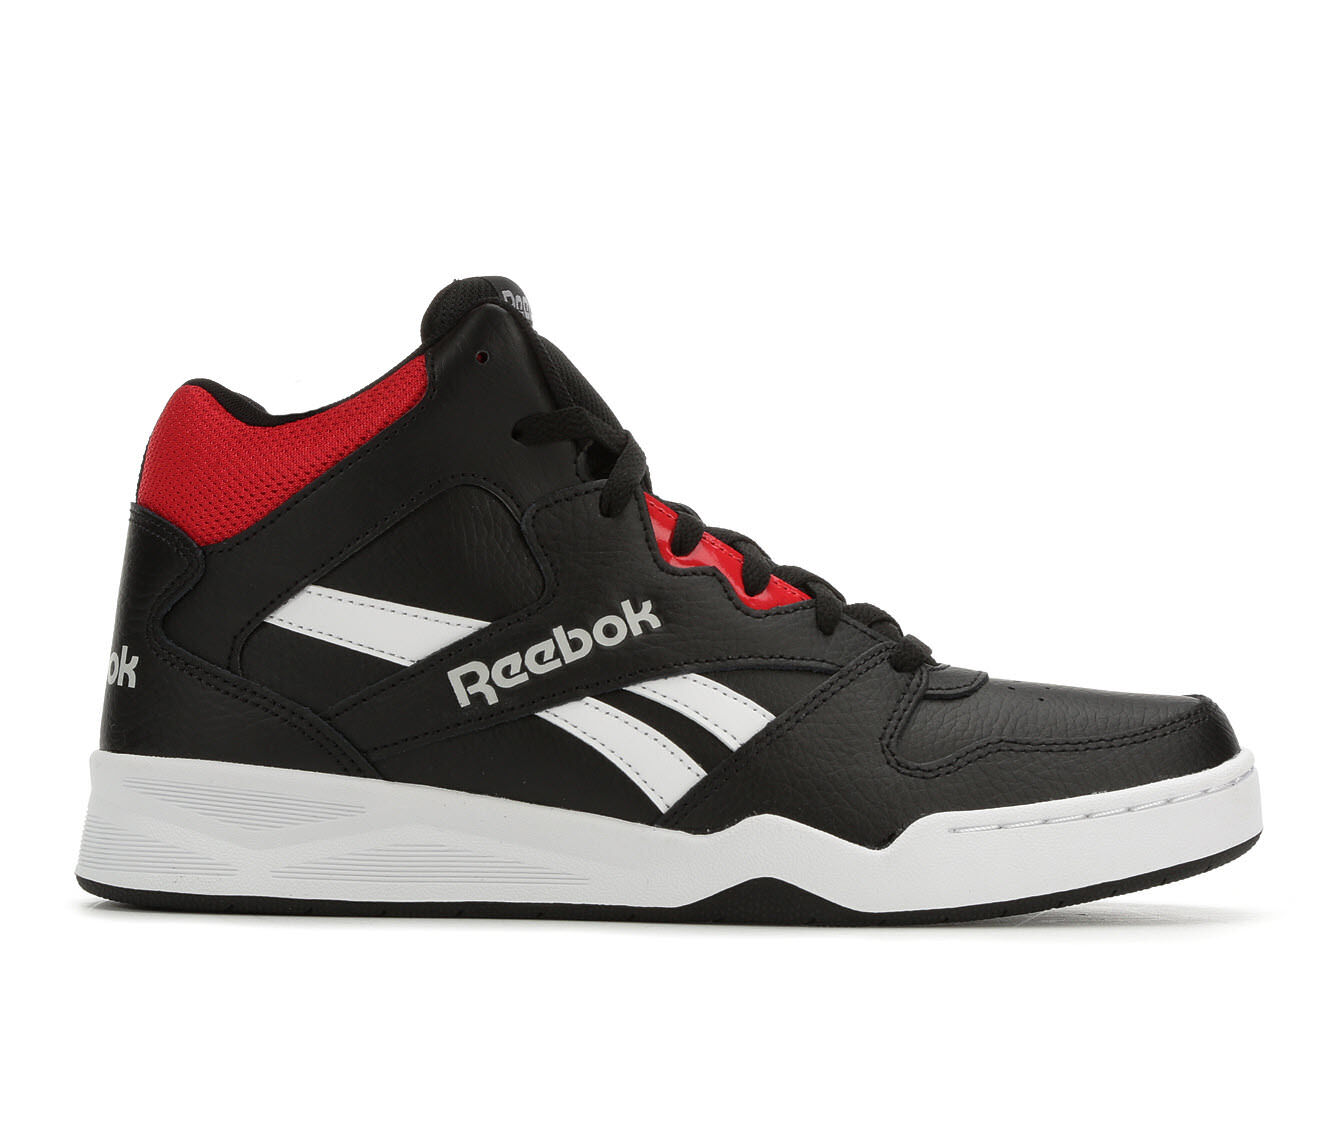 a large variety of Men's Reebok Royal BB4500 HI2 Retro Sneakers Blk/Red/Wht